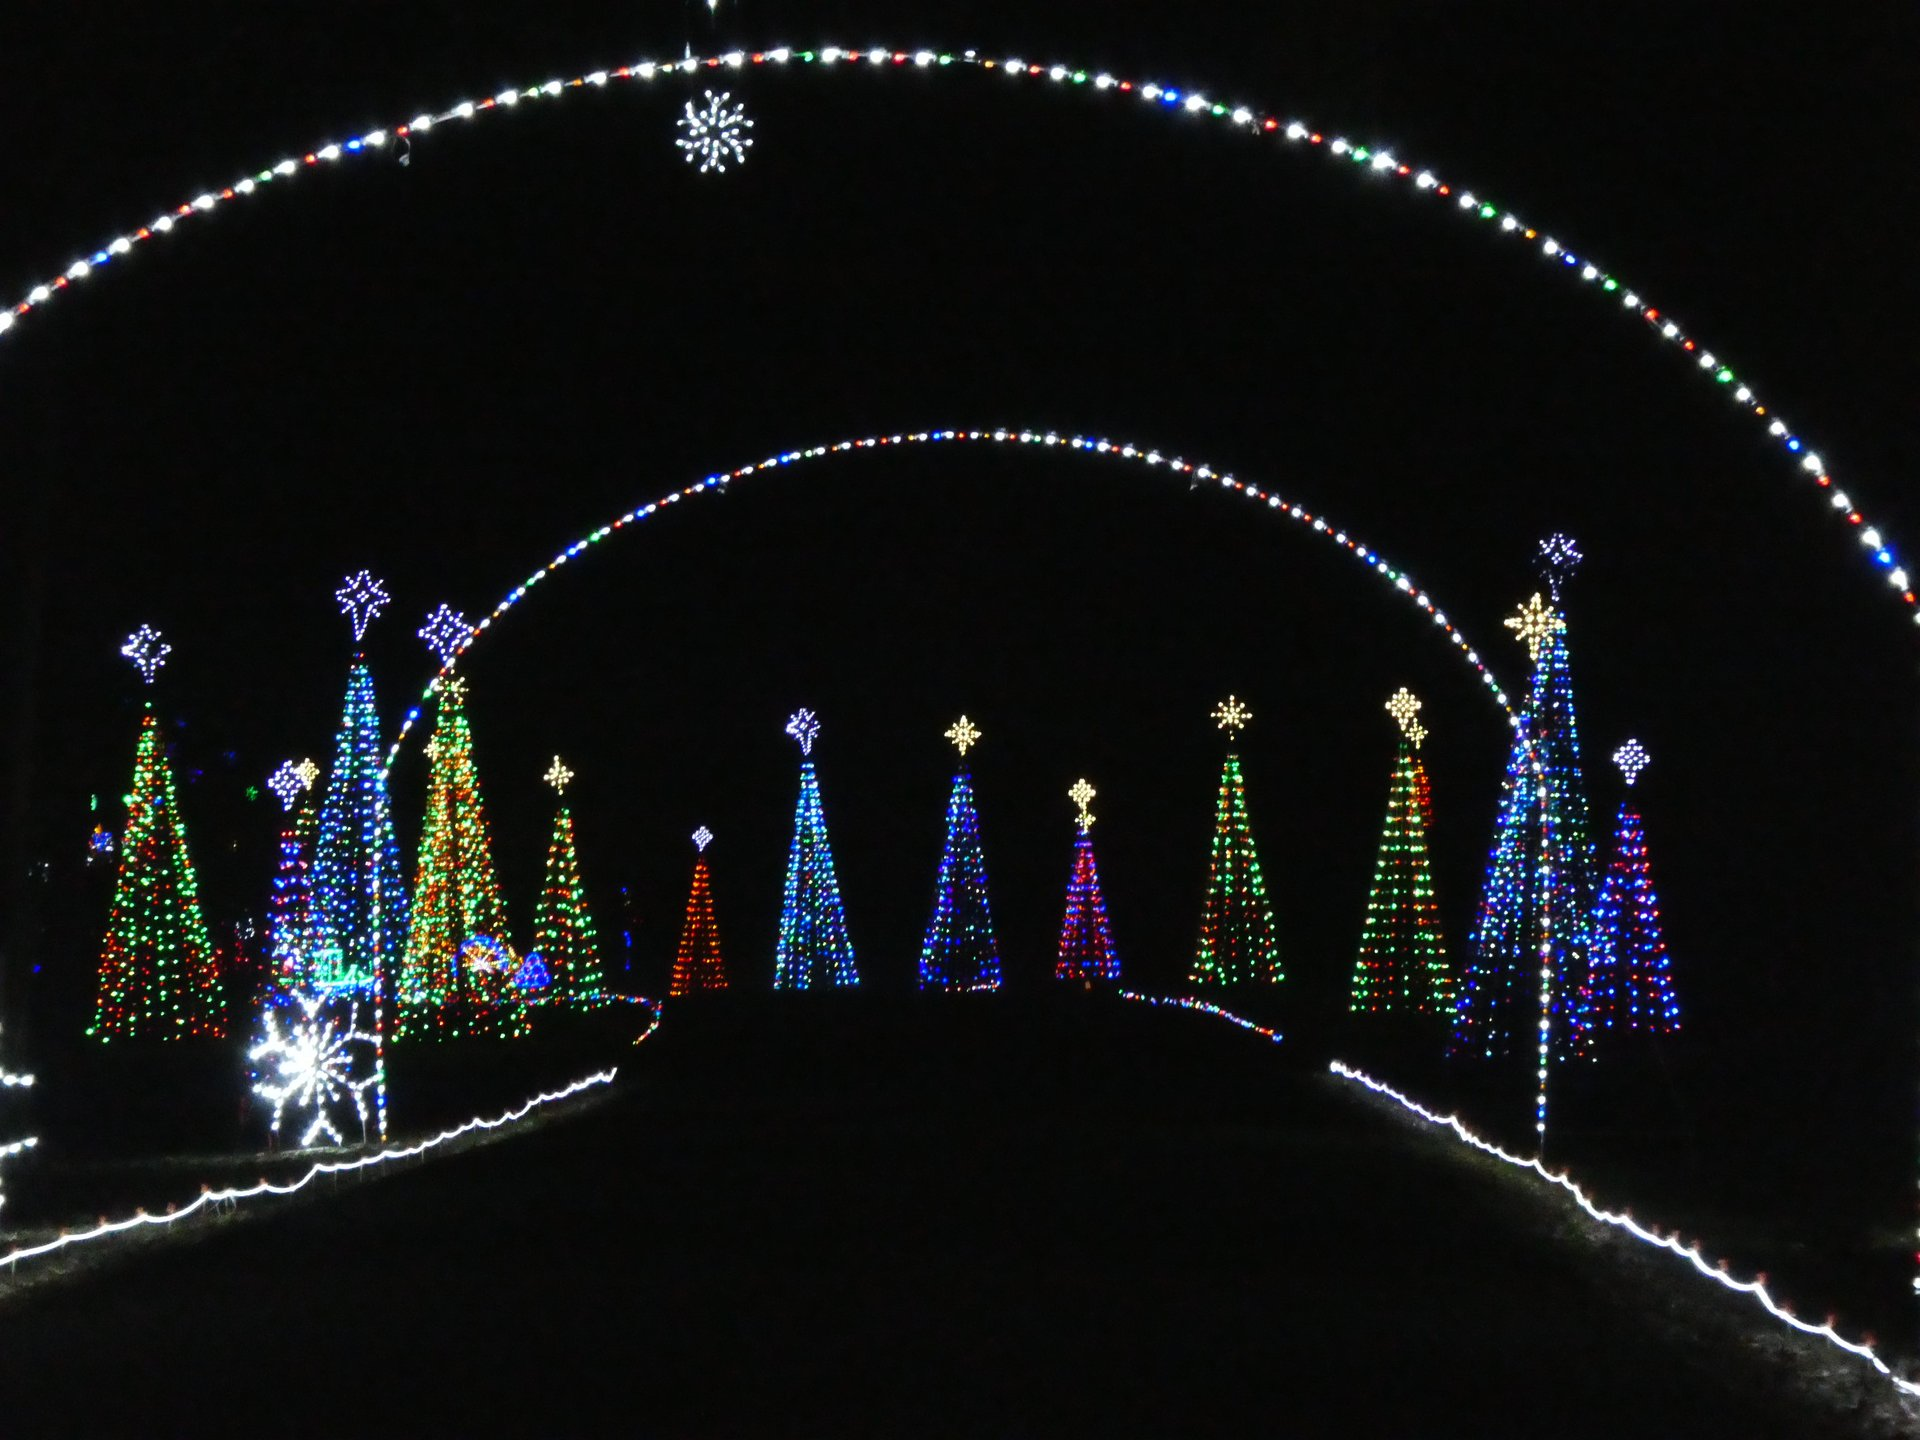 Celebration in Lights at Newport News Park 2020